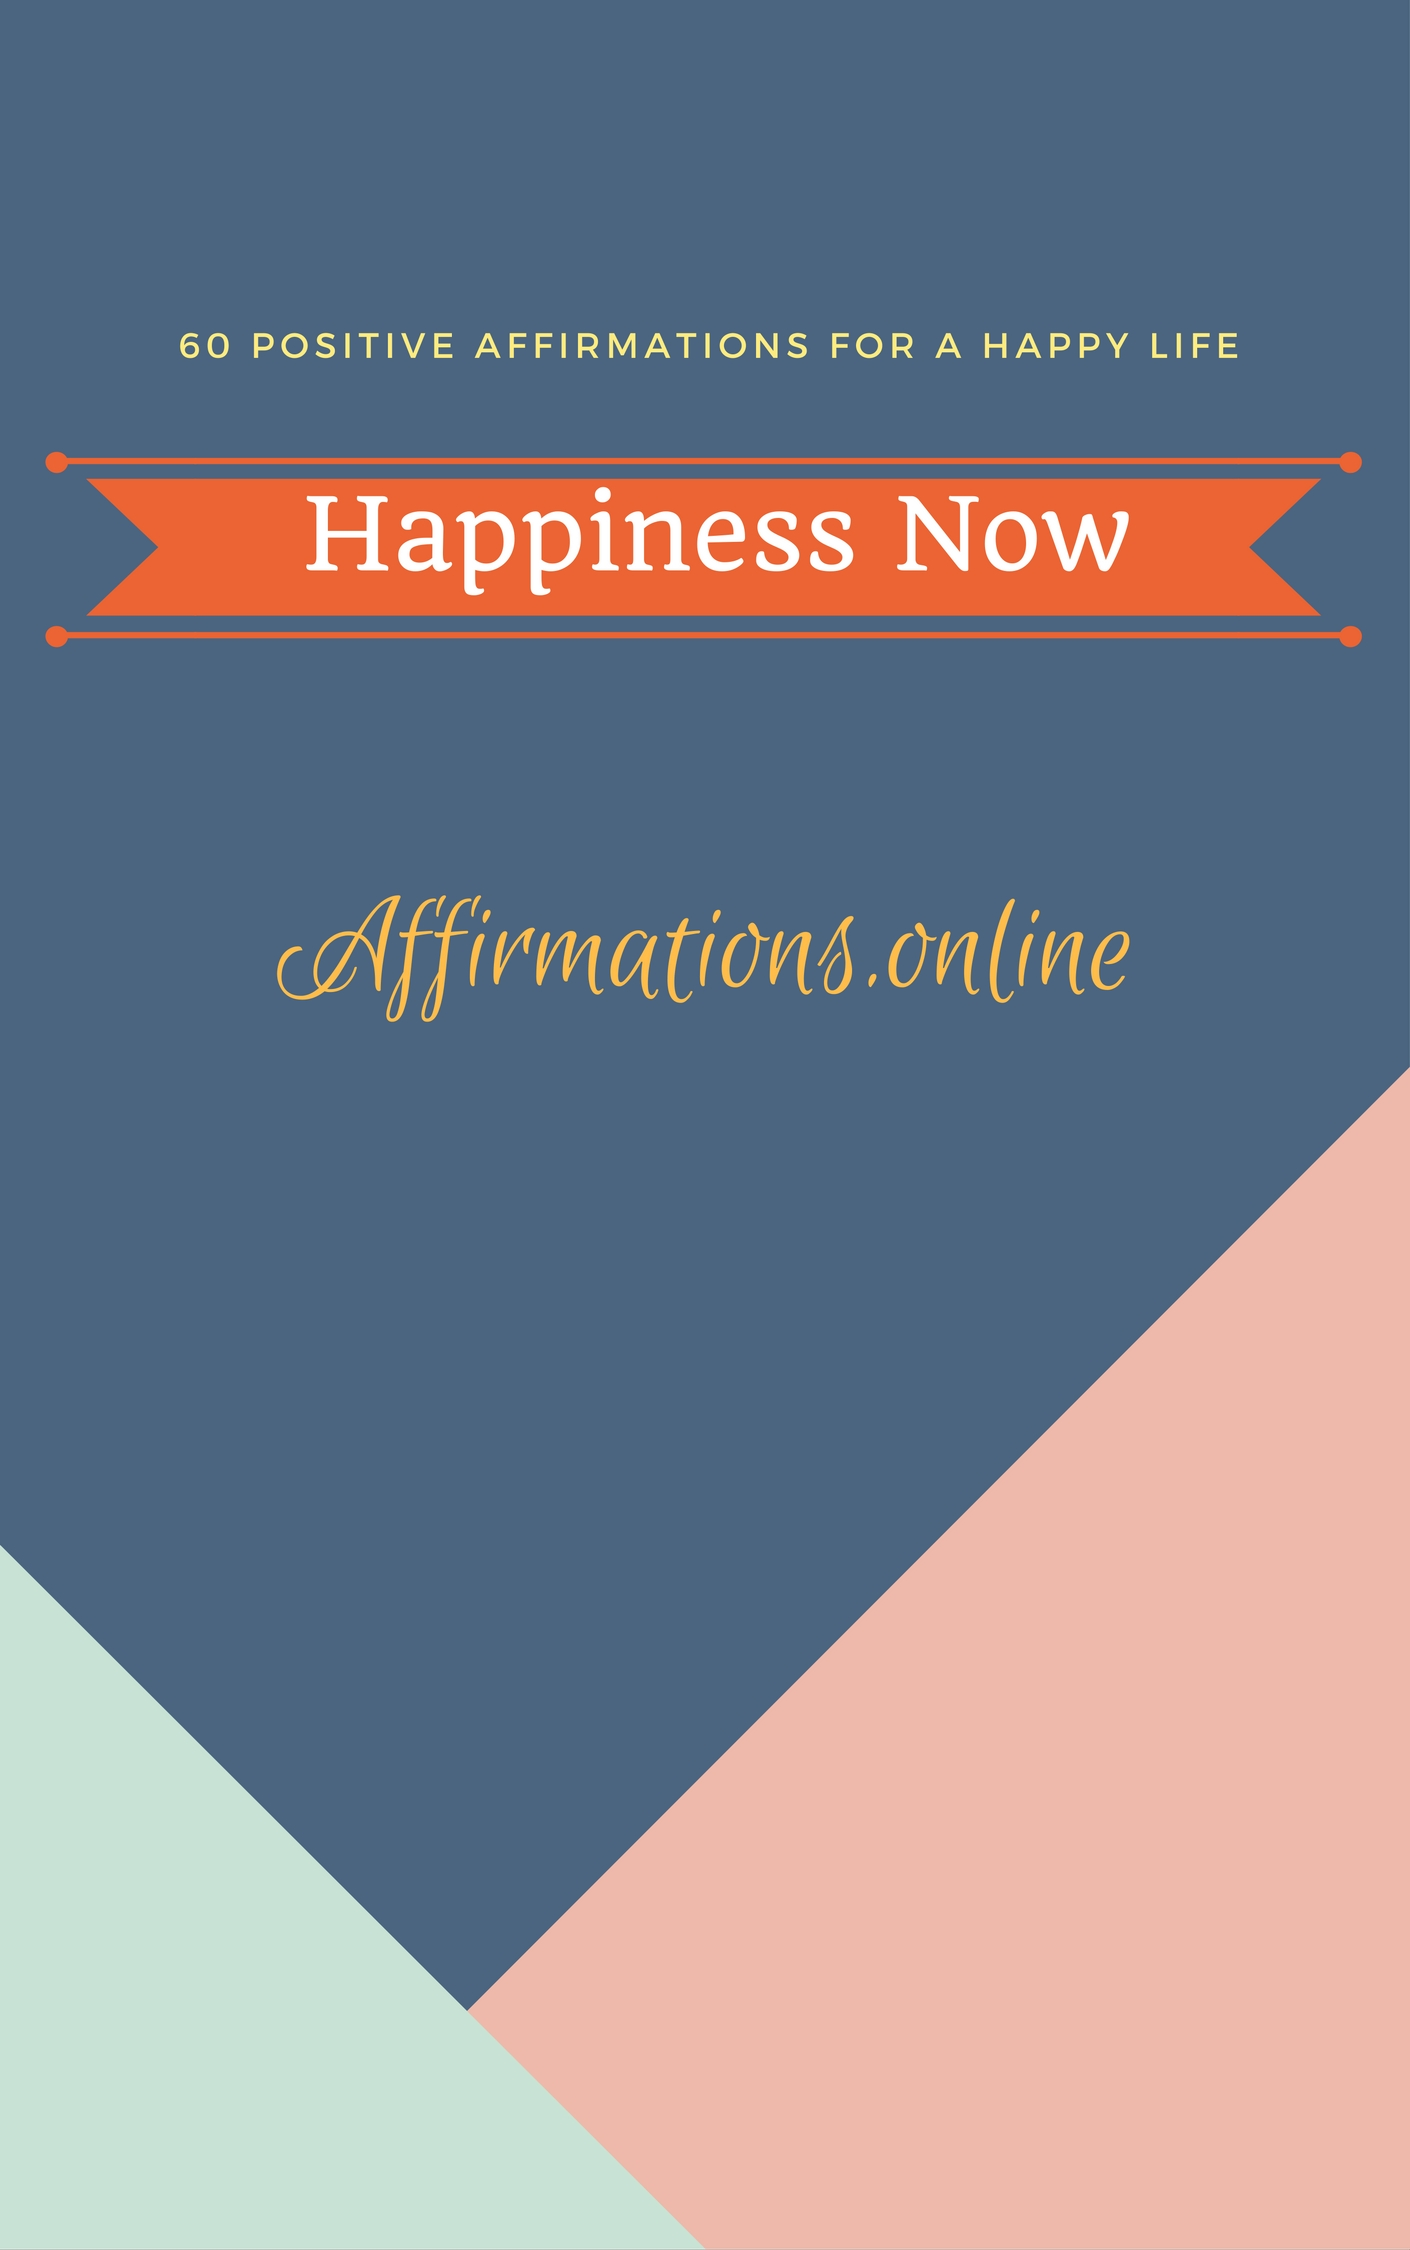 Happiness Now - 60 Positive Affirmations For A Happy Life - ebook cover from affirmations.online